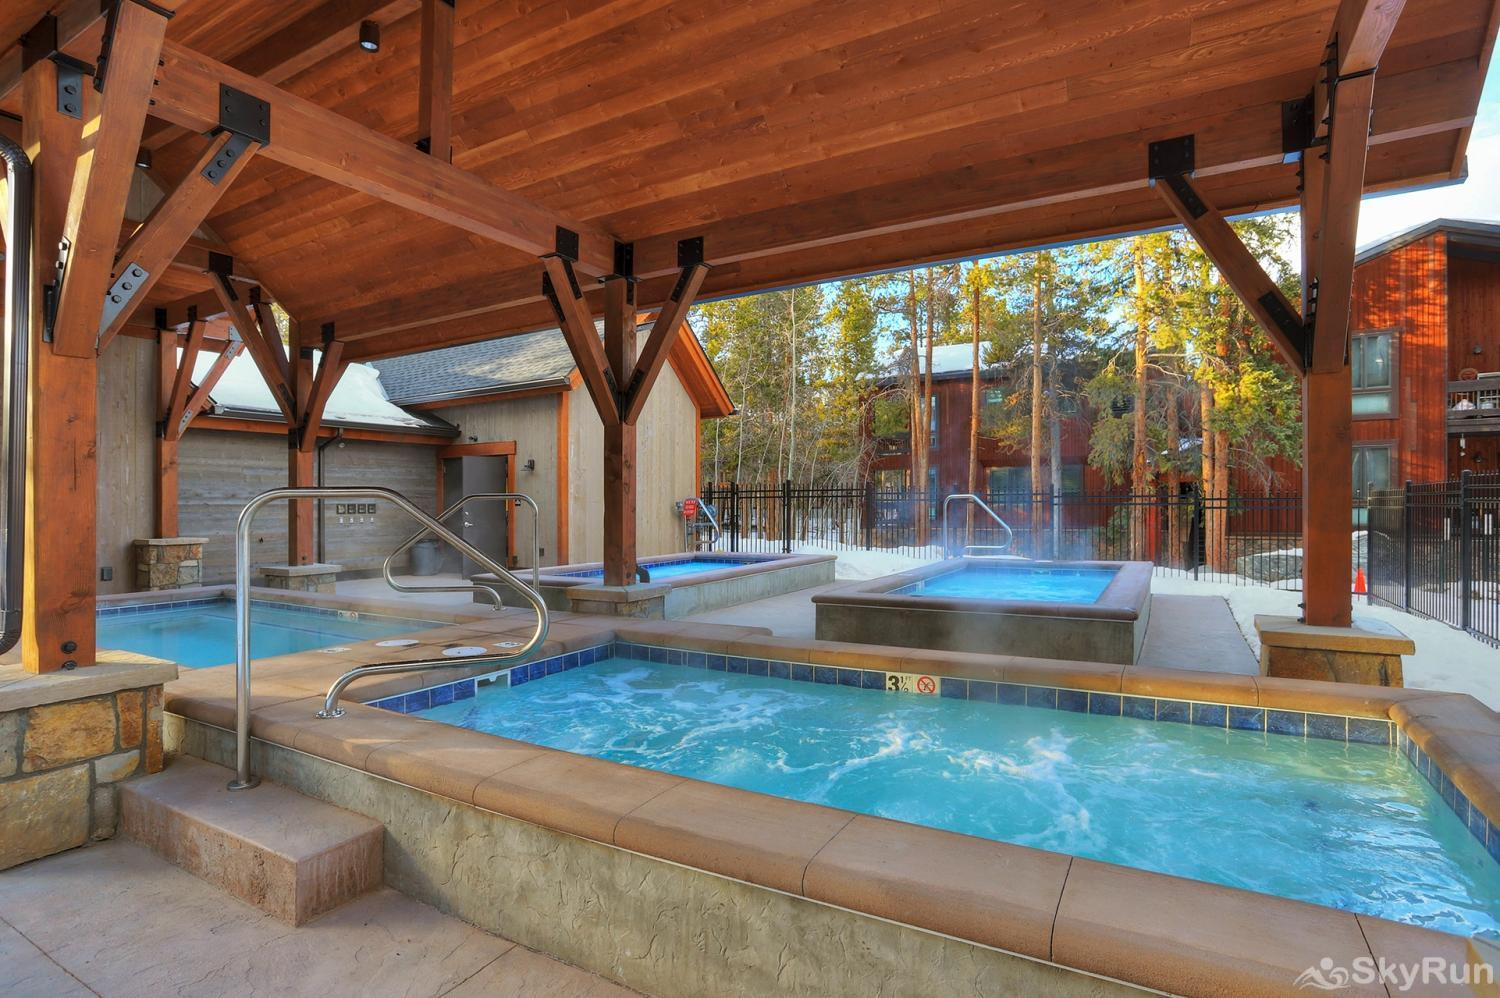 Pine Creek Lodge Soak in the outdoor hot tubs after a day of fun adventures!